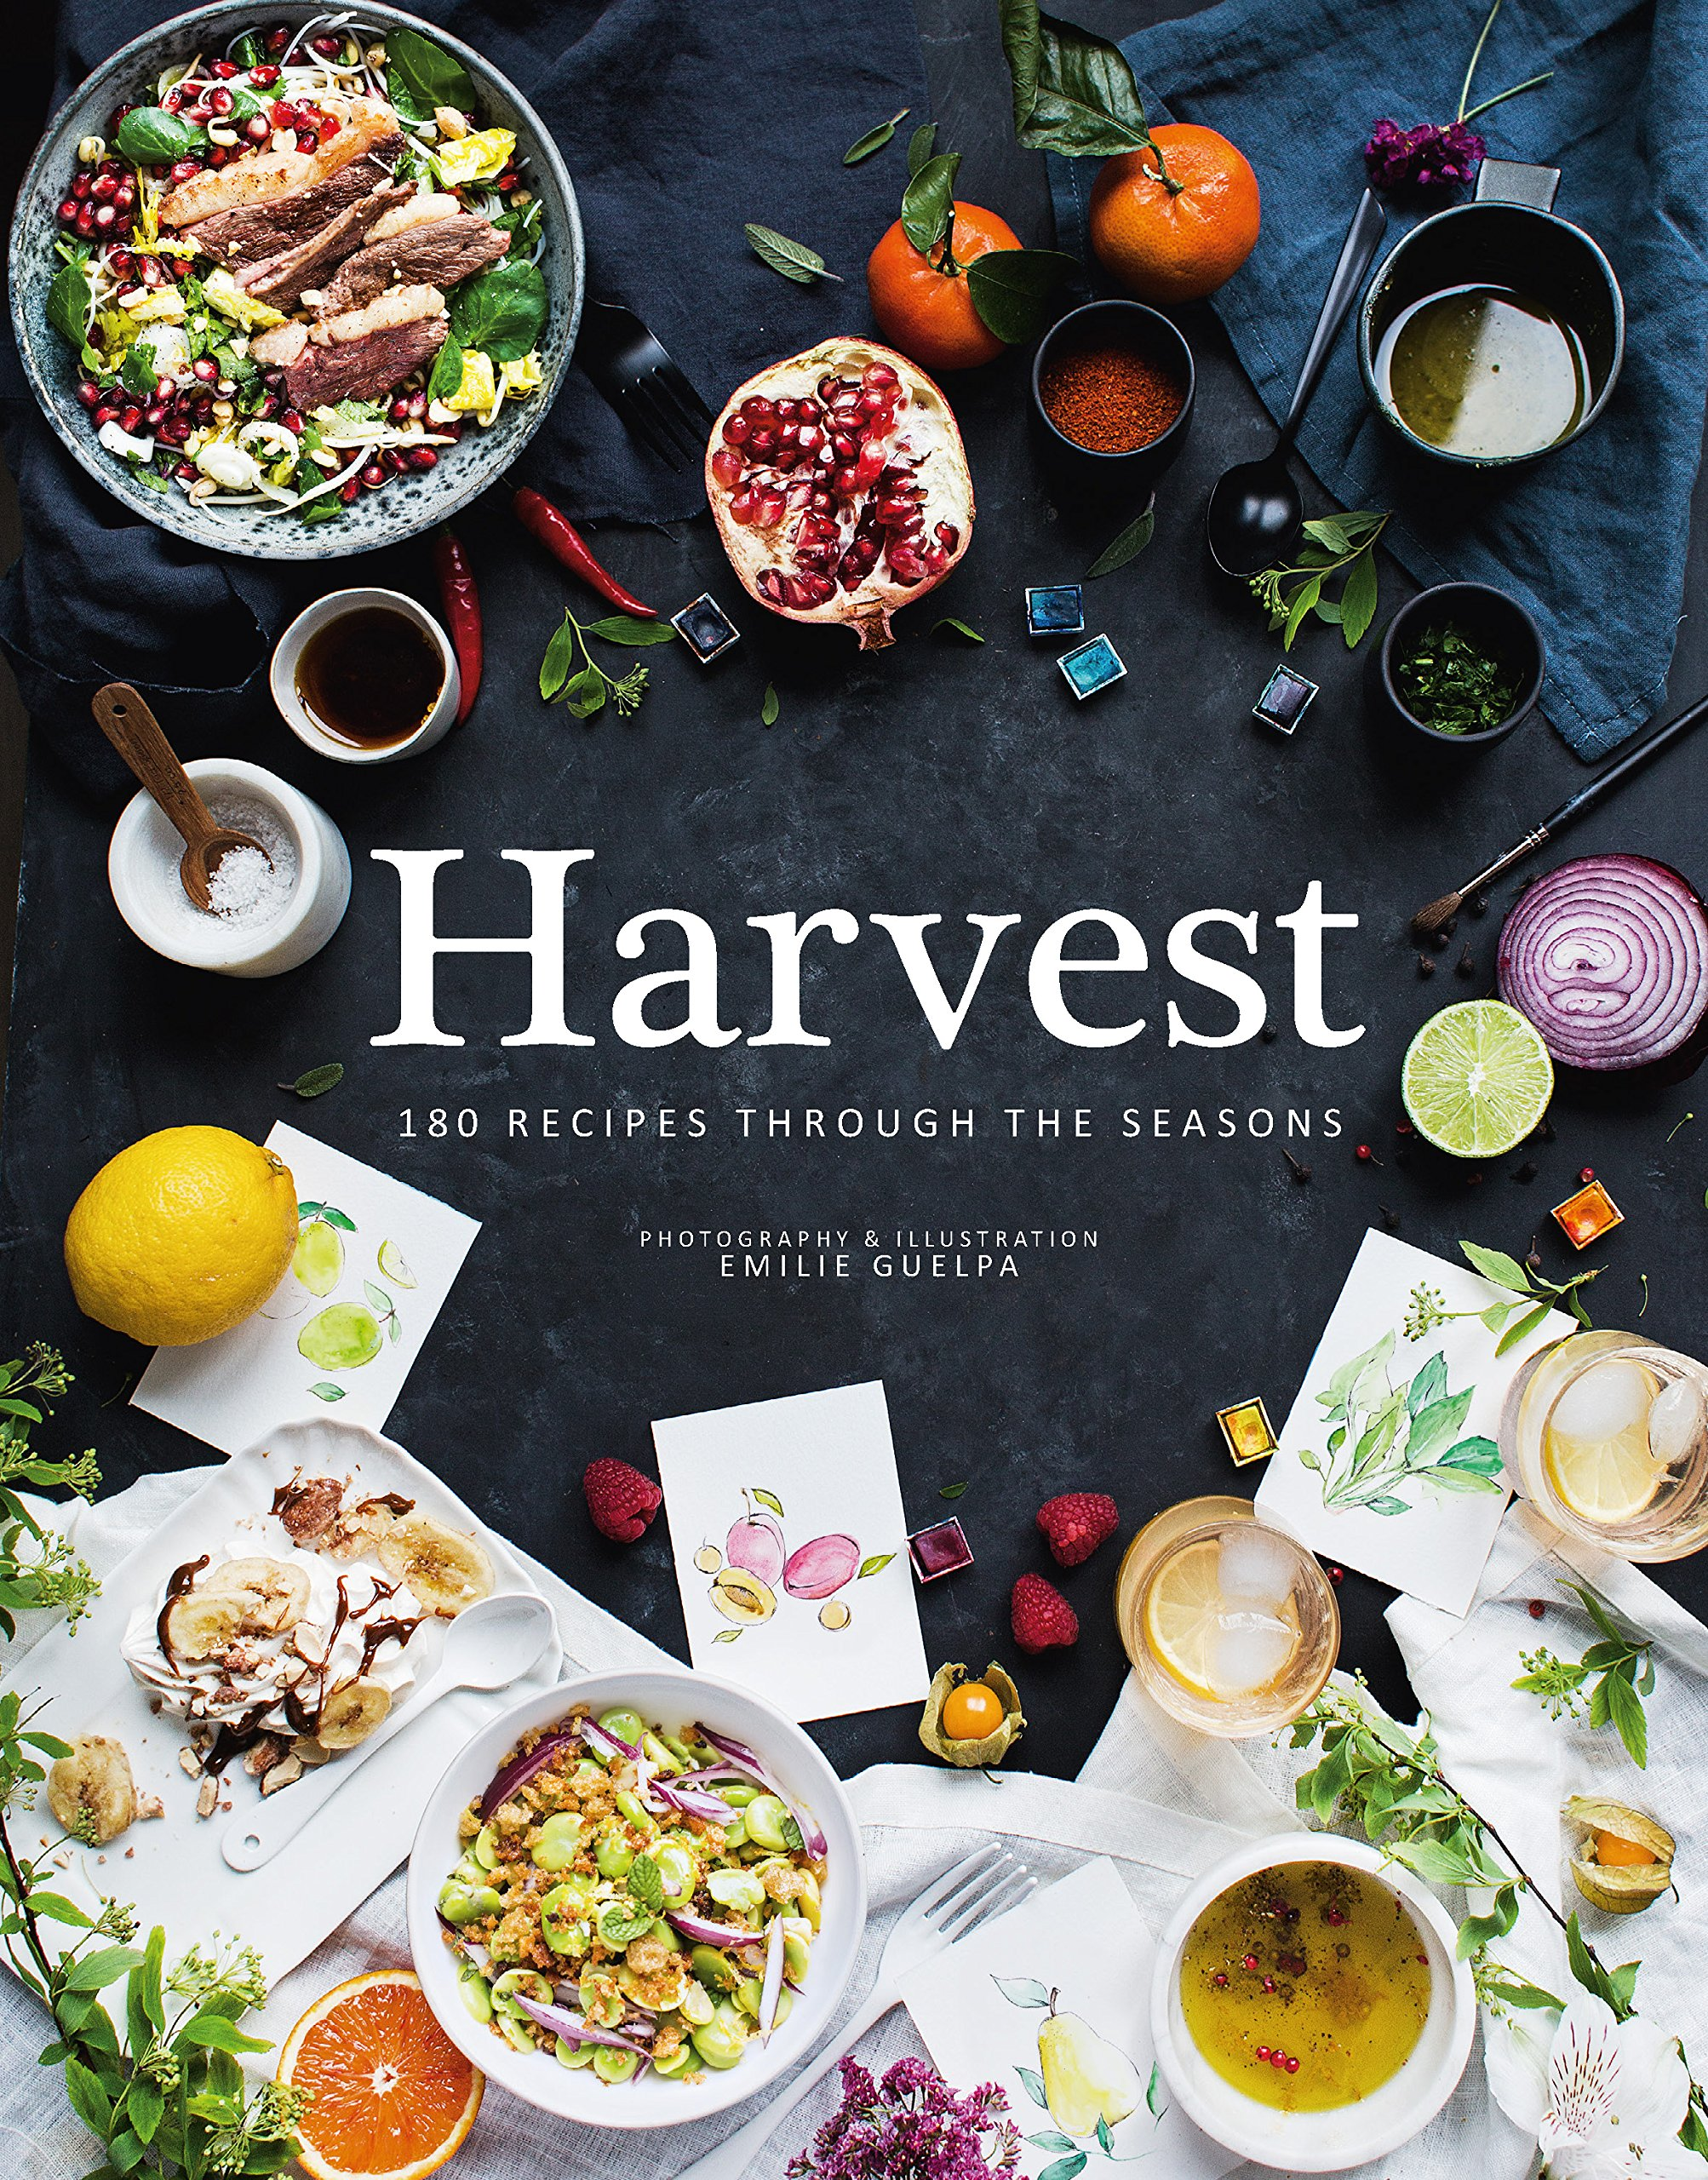 Harvest: 180 Recipes through the Seasons: Amazon.es: Emilie Guelpa: Libros en idiomas extranjeros